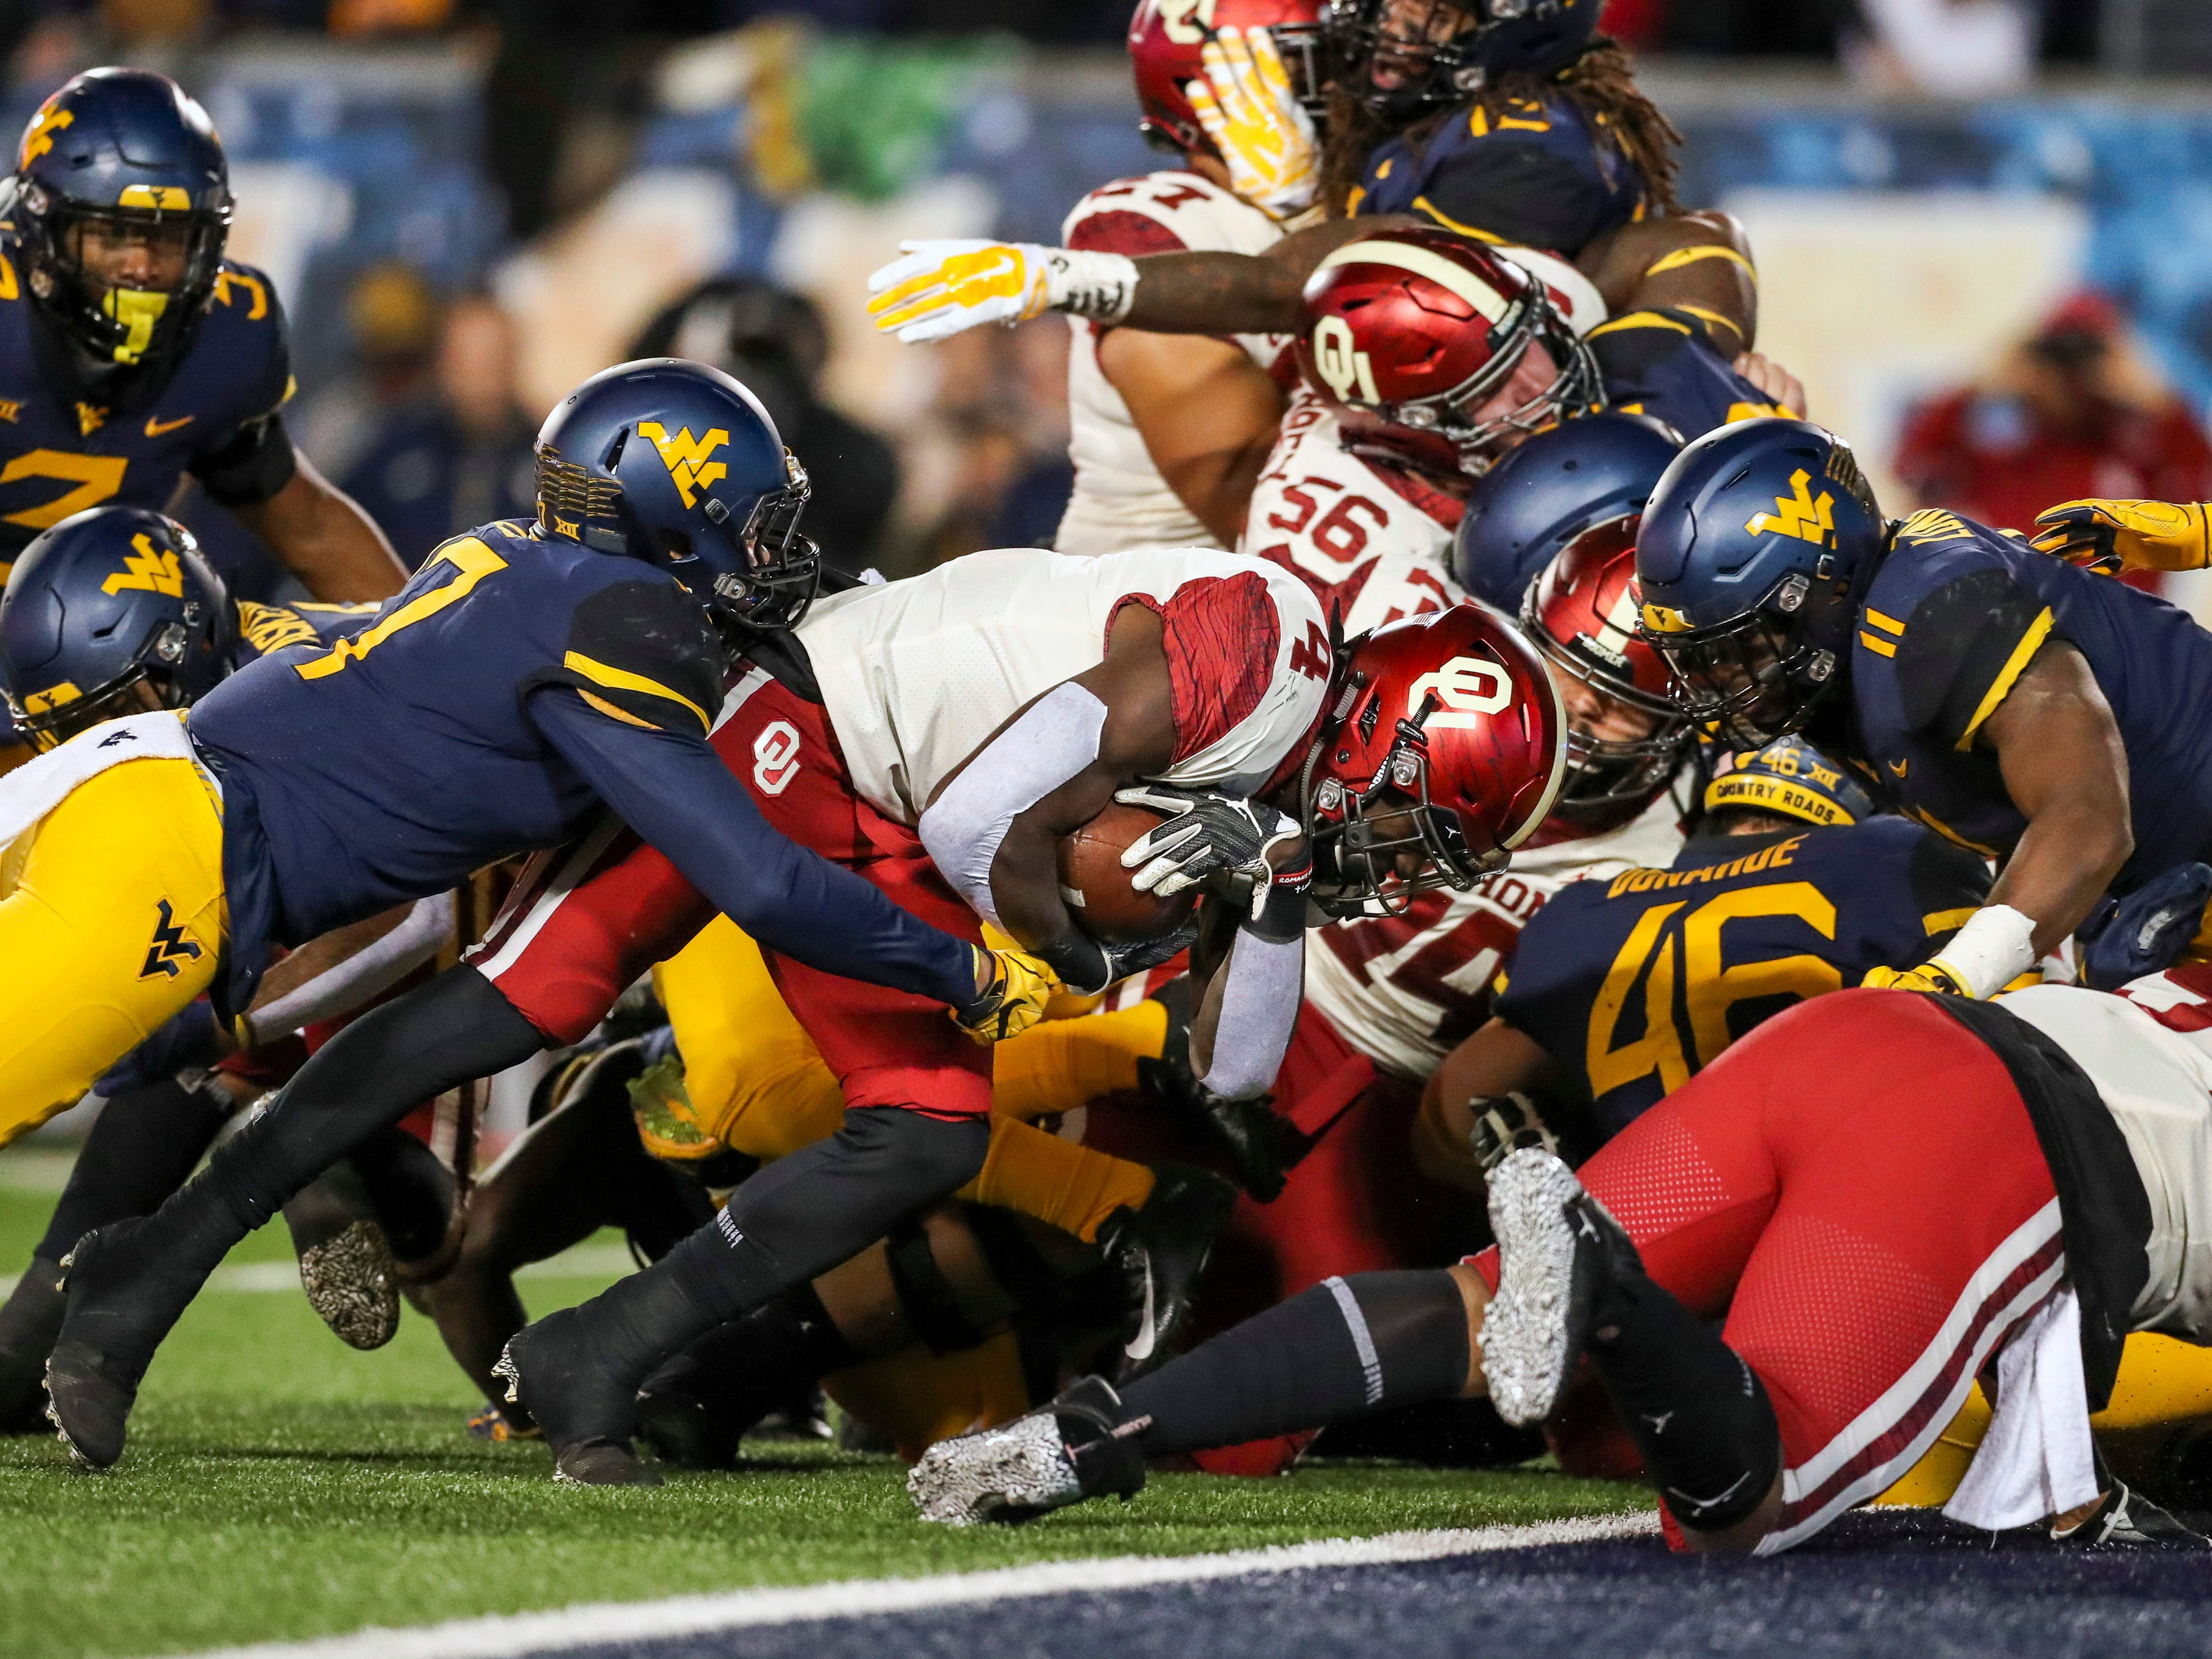 Oklahoma running back Trey Sermon carries for a touchdown during the second quarter against West Virginia.